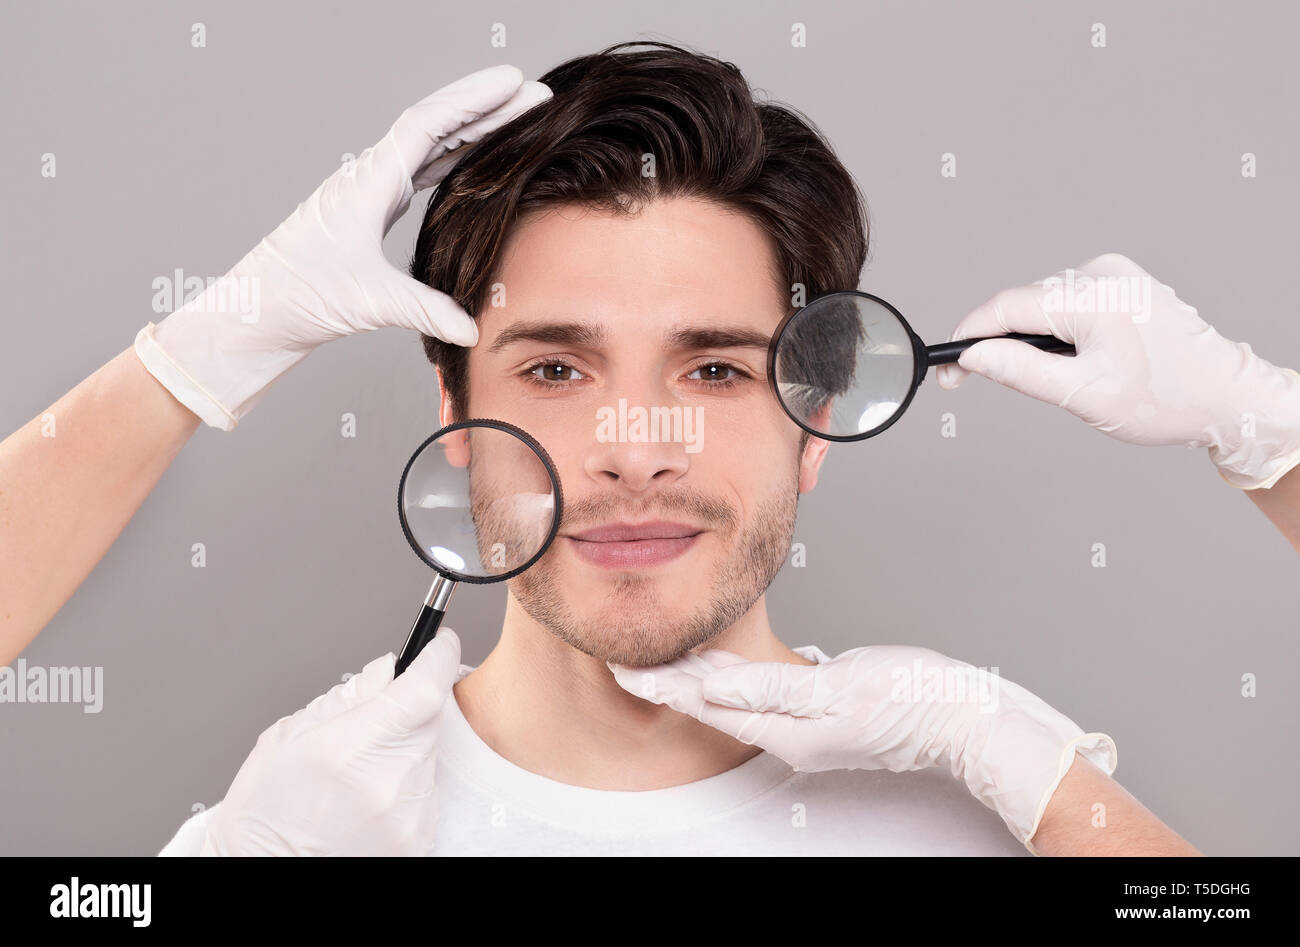 Face of young handsome man with beautician's hands and magnifiers - Stock Image